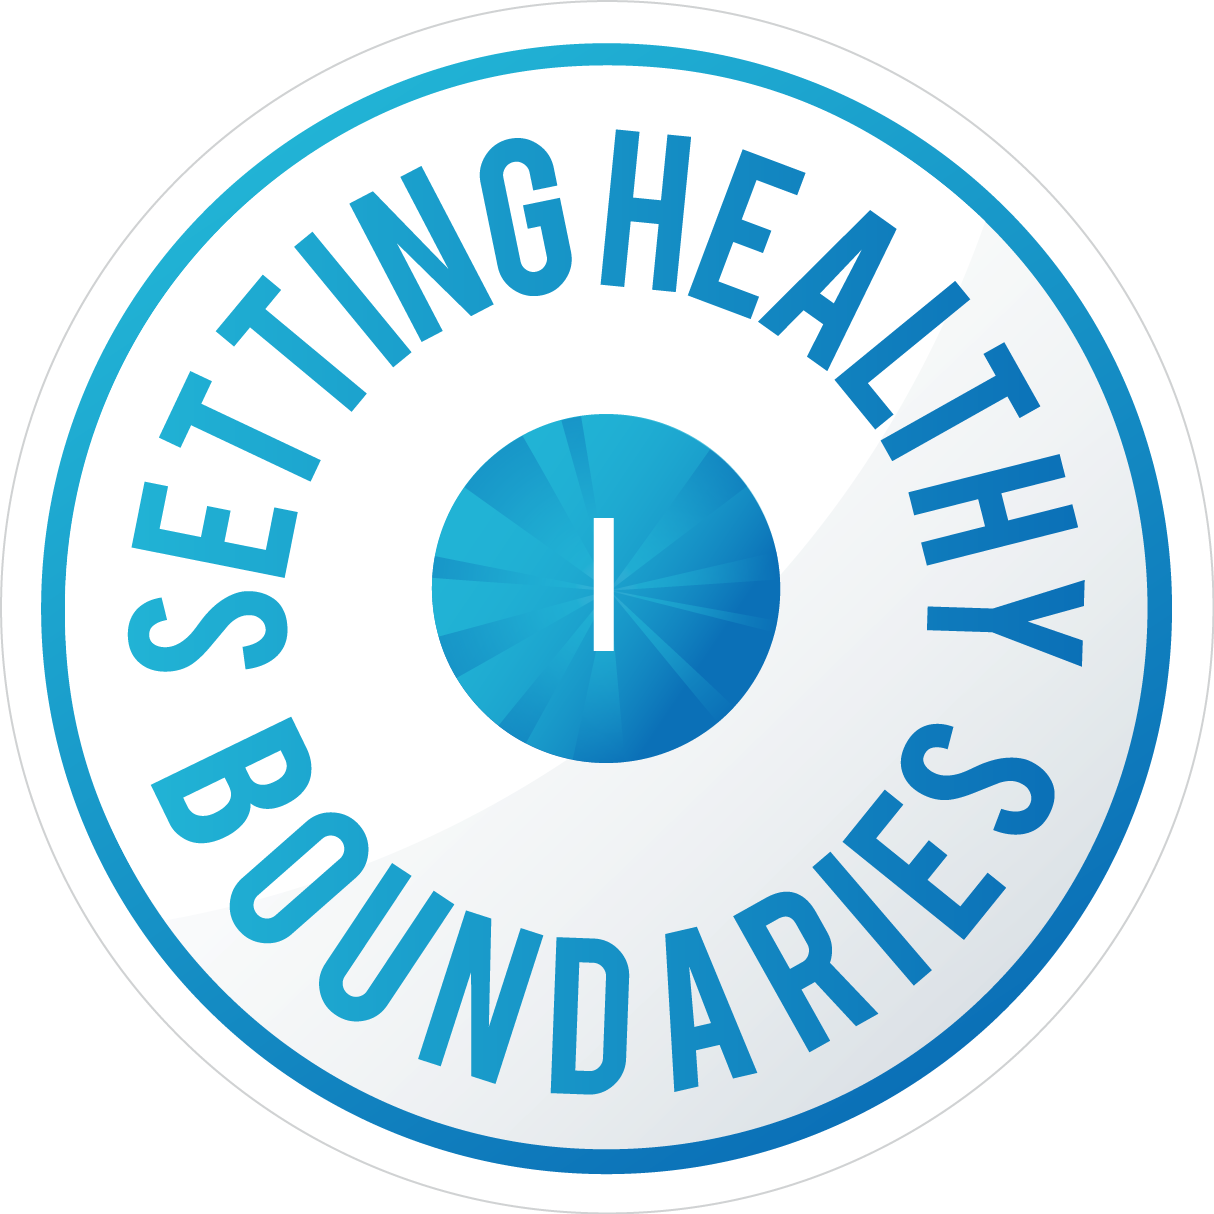 Integrity_Setting_Healthy_Boundaries